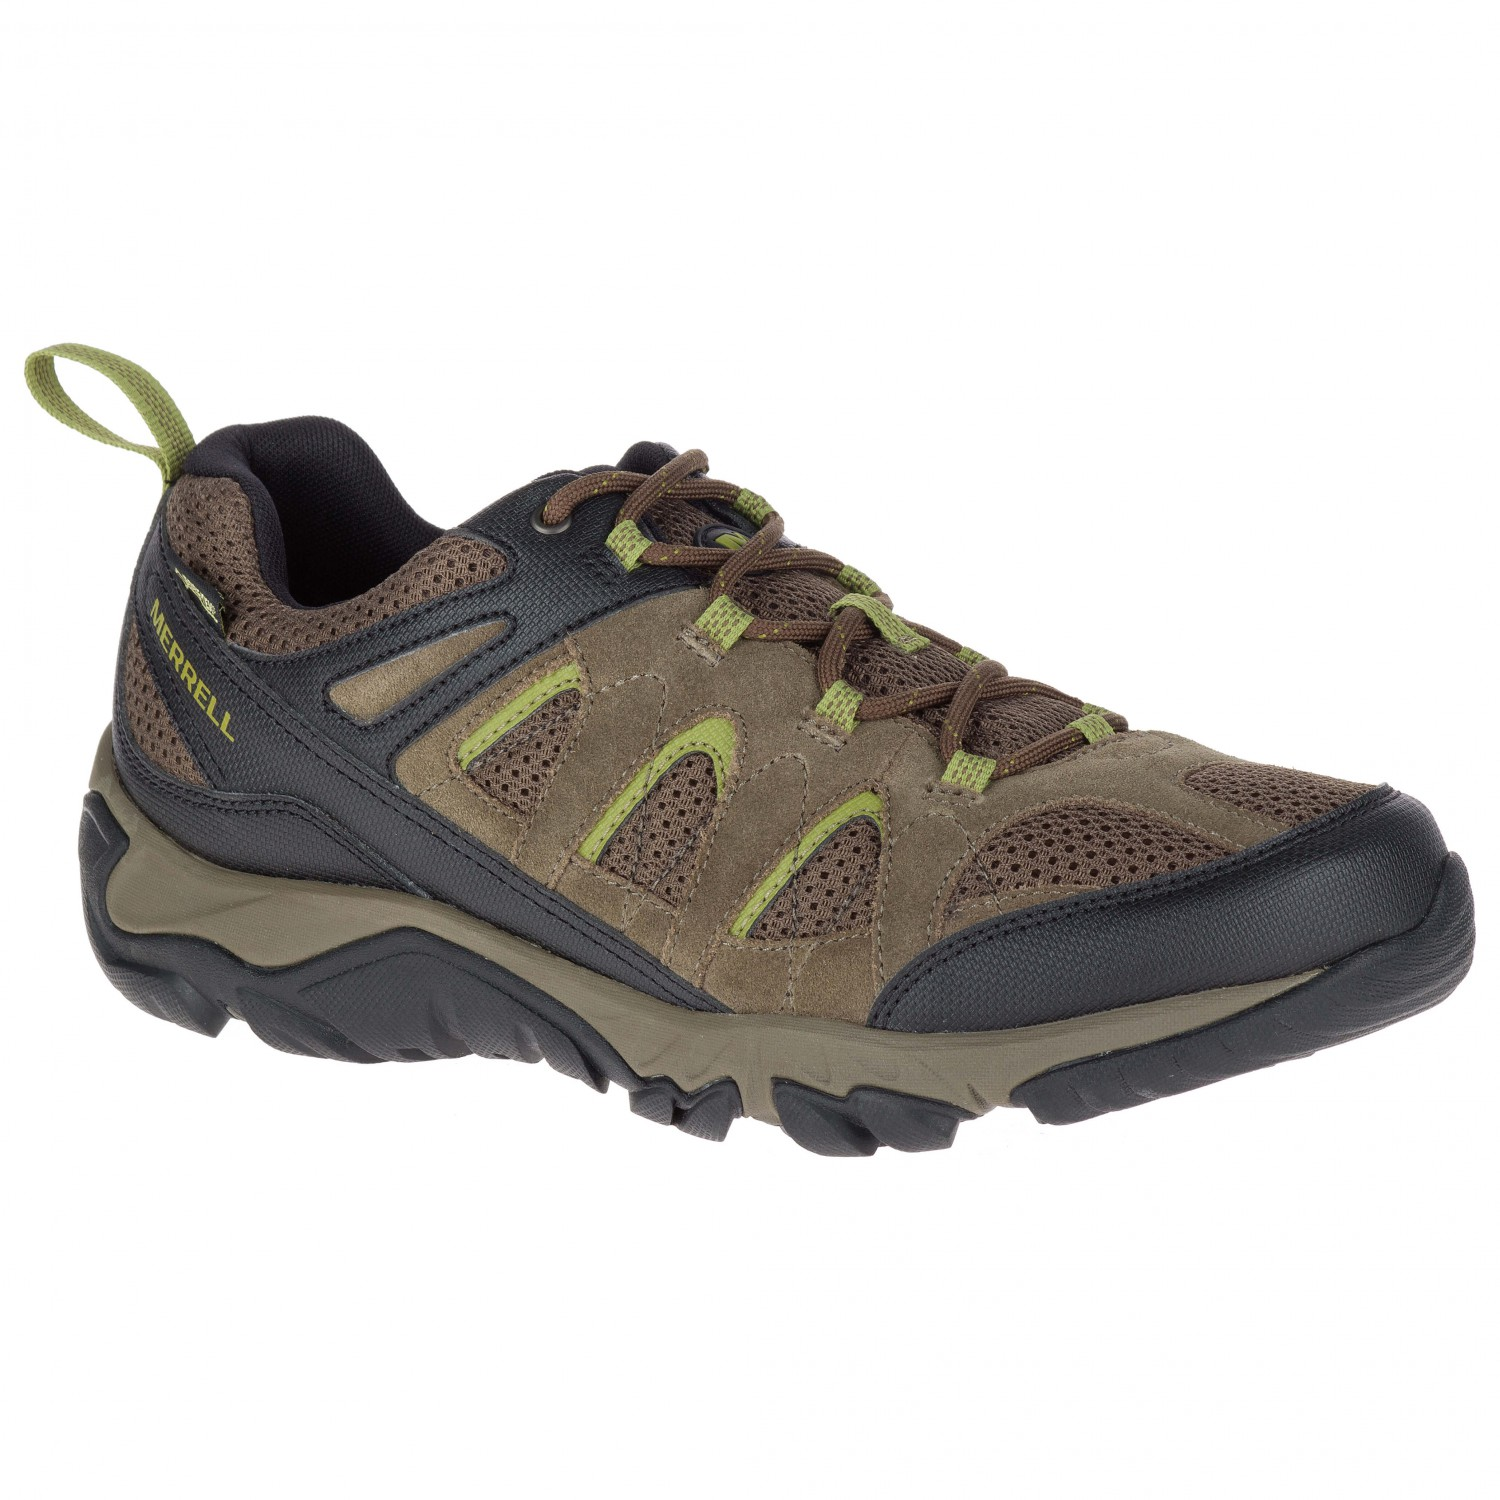 Merrell - Outmost Vent GTX - Multisport shoes ...